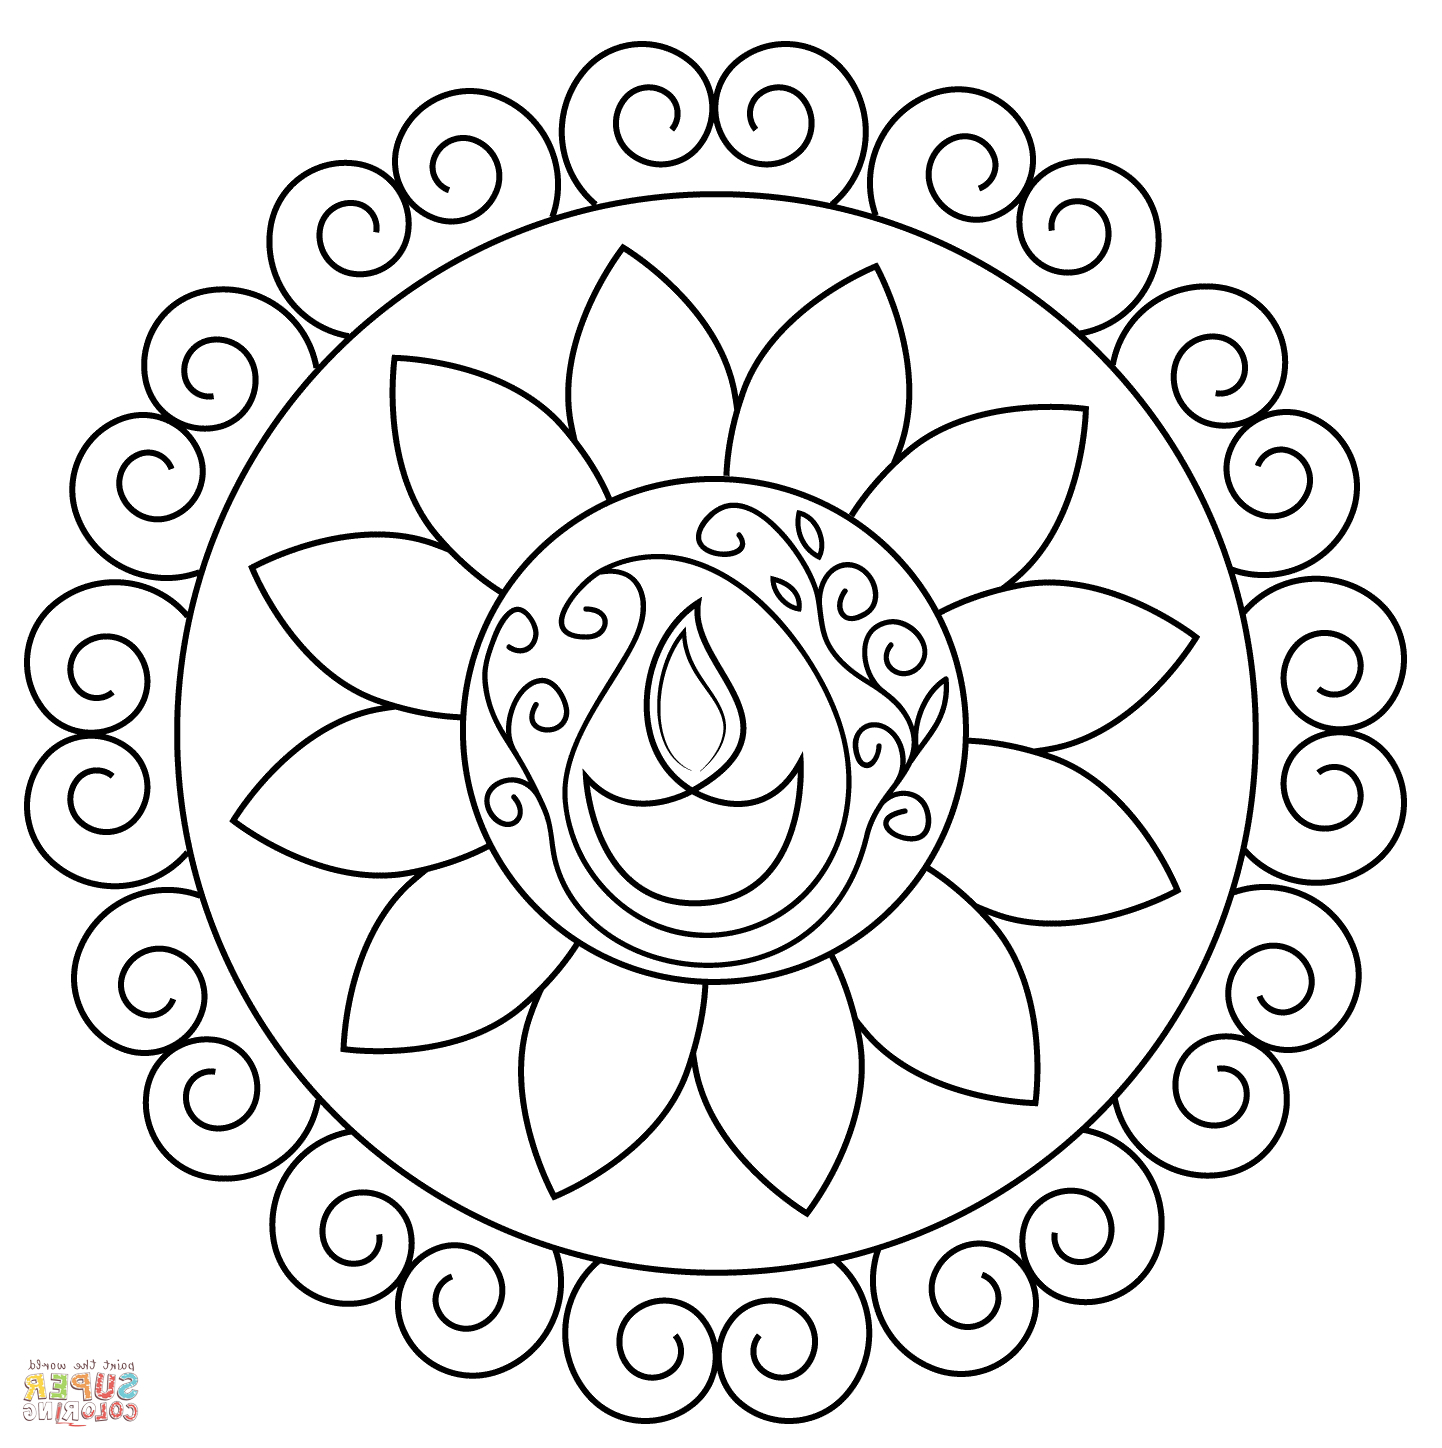 Diwali Rangoli Drawing at GetDrawings.com | Free for personal use ...